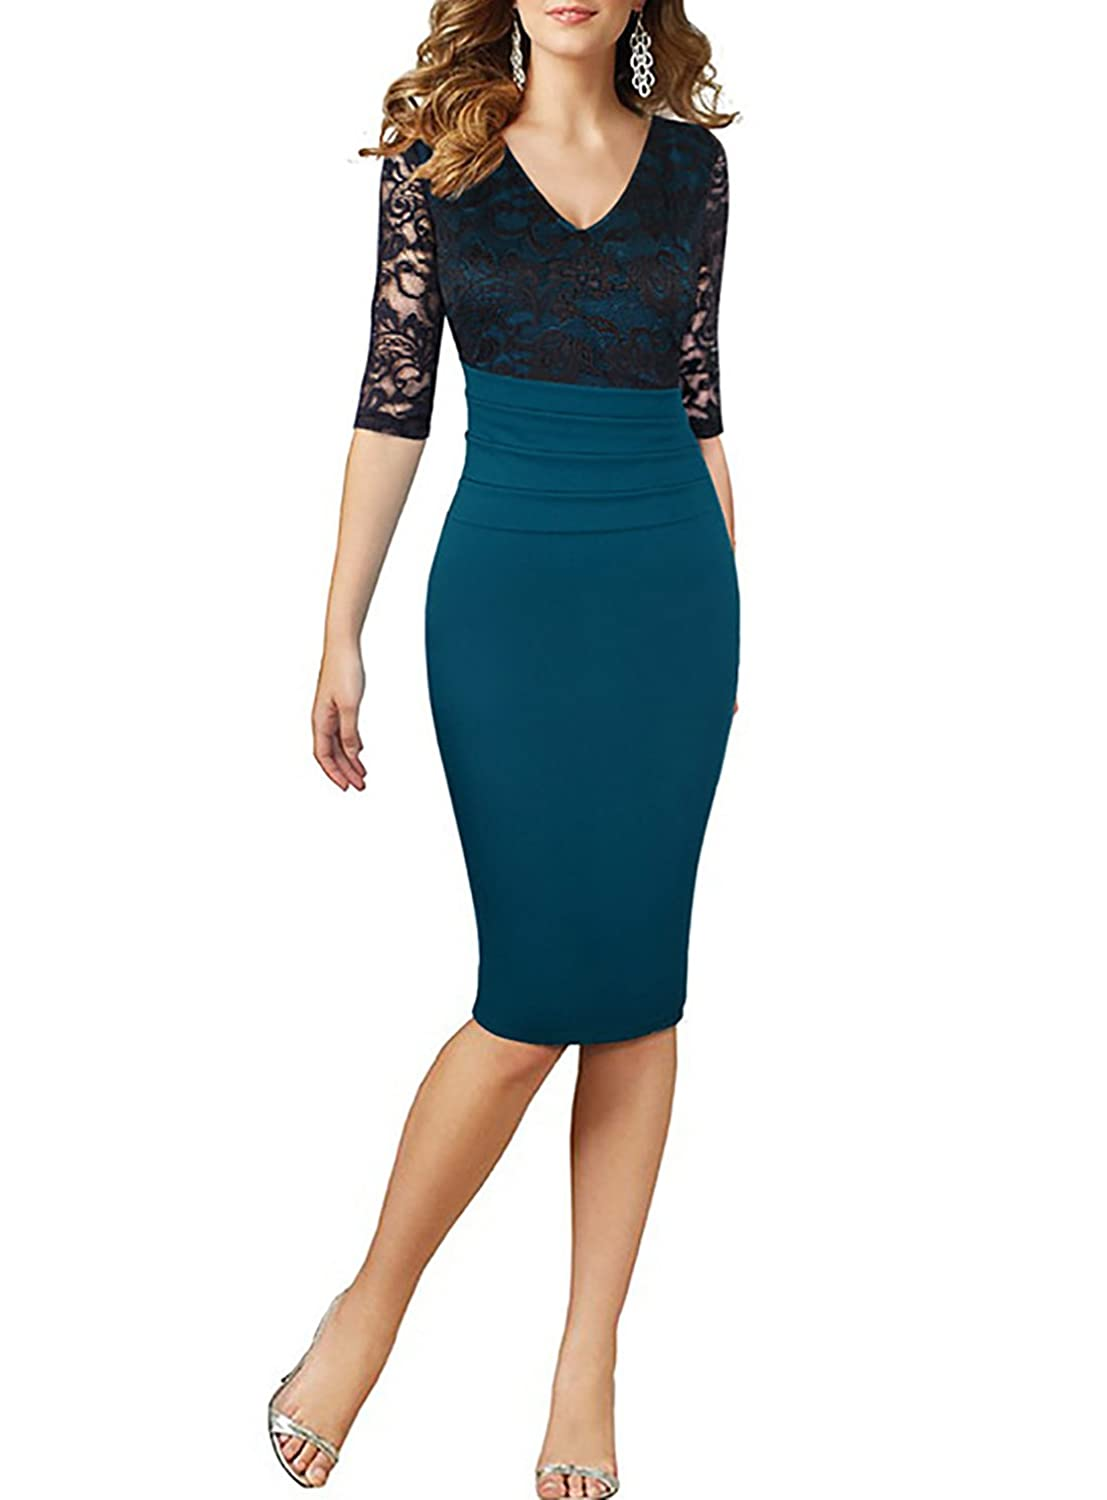 HELYO Women's Deep V Neck Half Sleeve Wear to Work Cocktail Party Pencil Special Occasions Dress 198